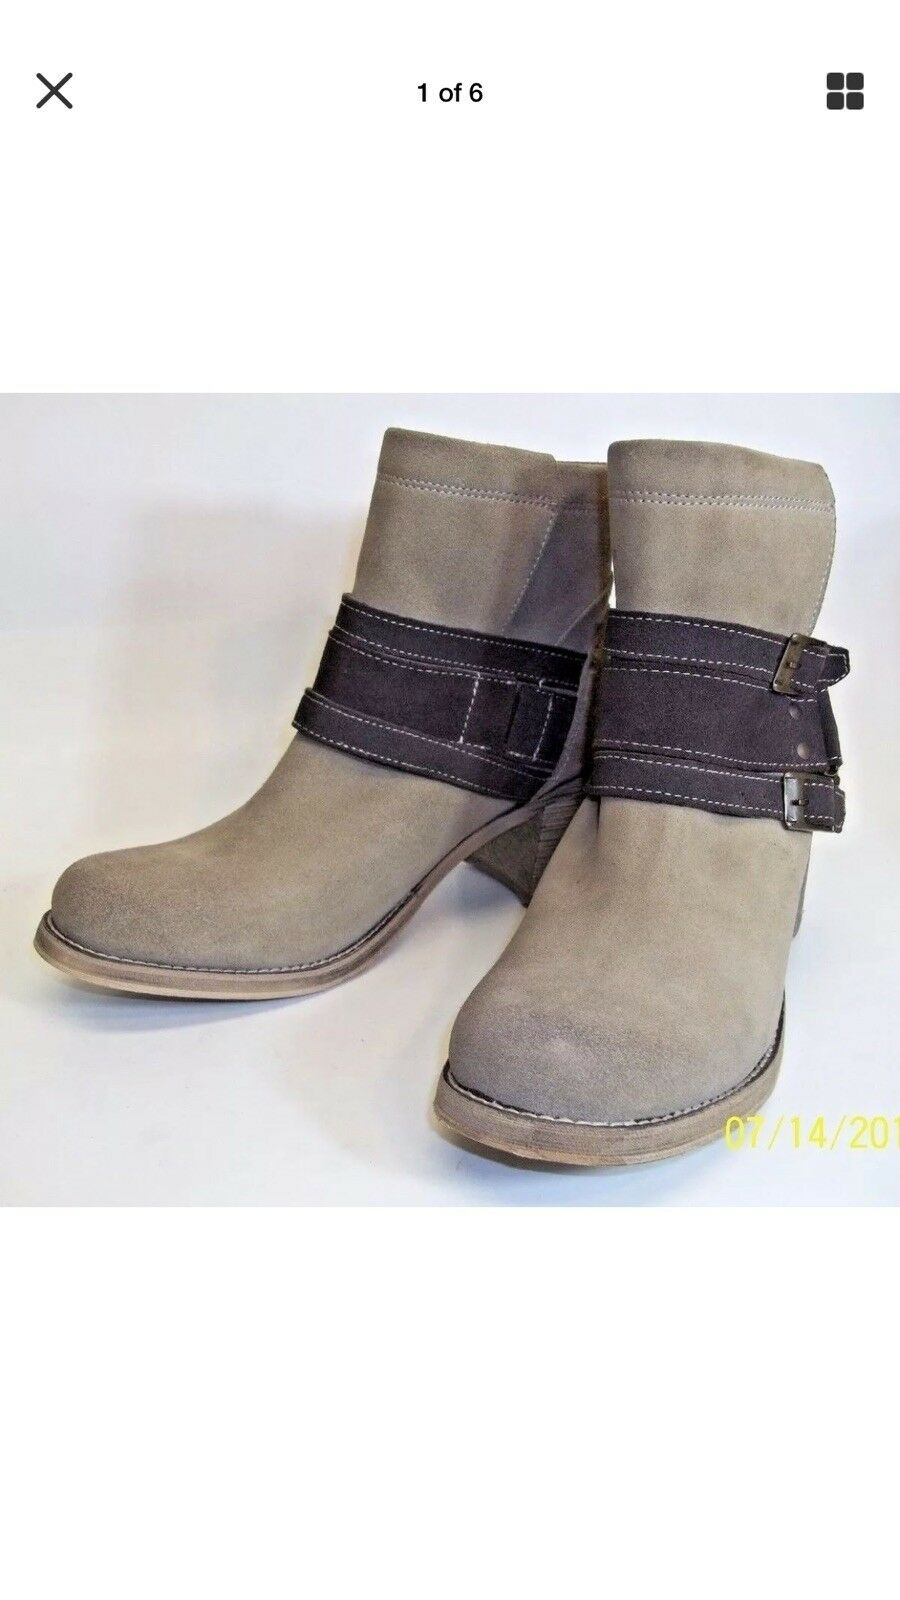 Bed Stu Bench Made Womens Boots US 9 Free People Brown Leather Suede NEW 1582